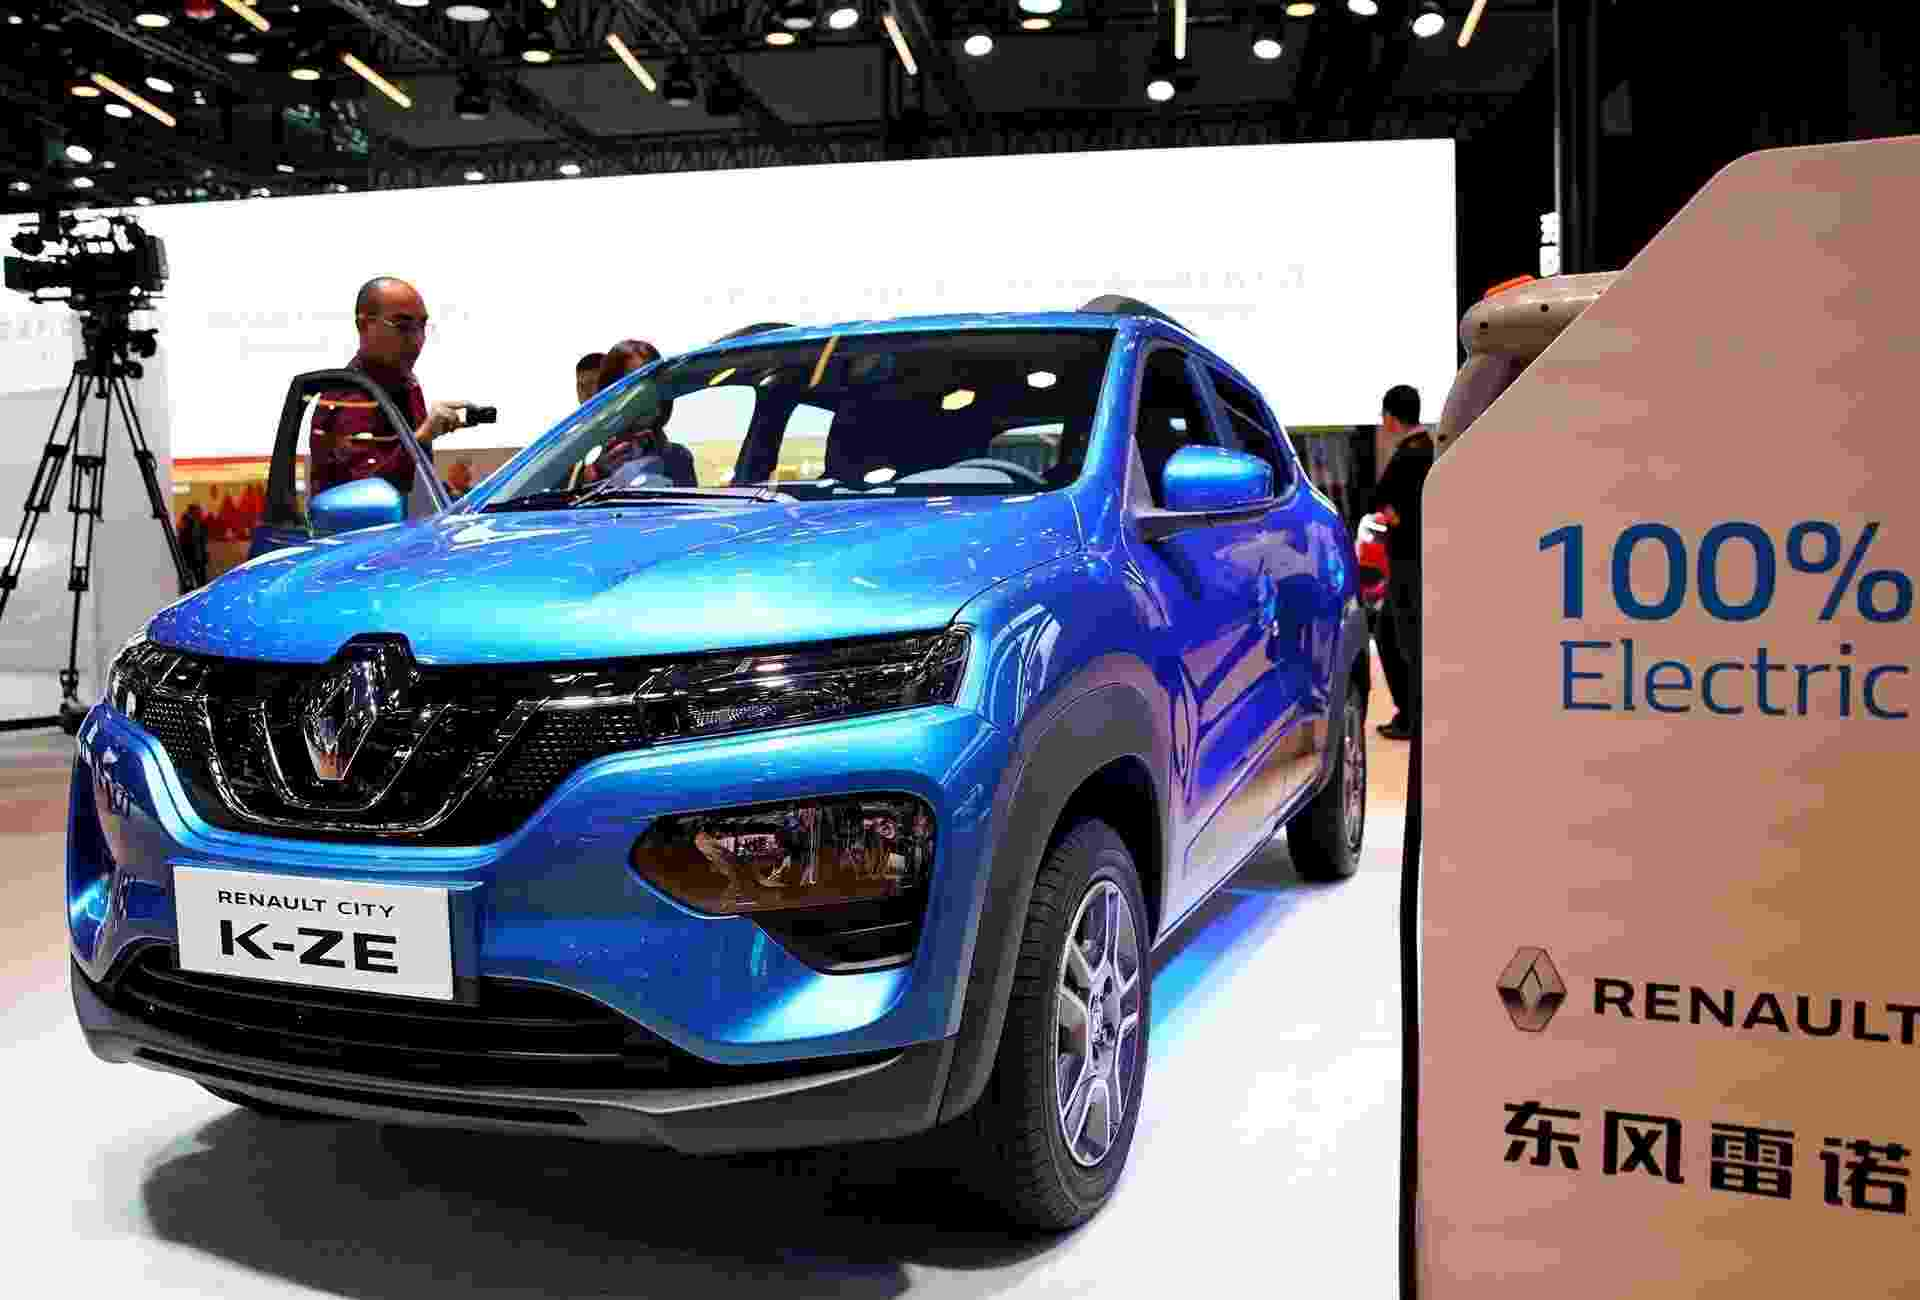 Renault City K-ZE Kwid elétrico - Aly Song/Reuters